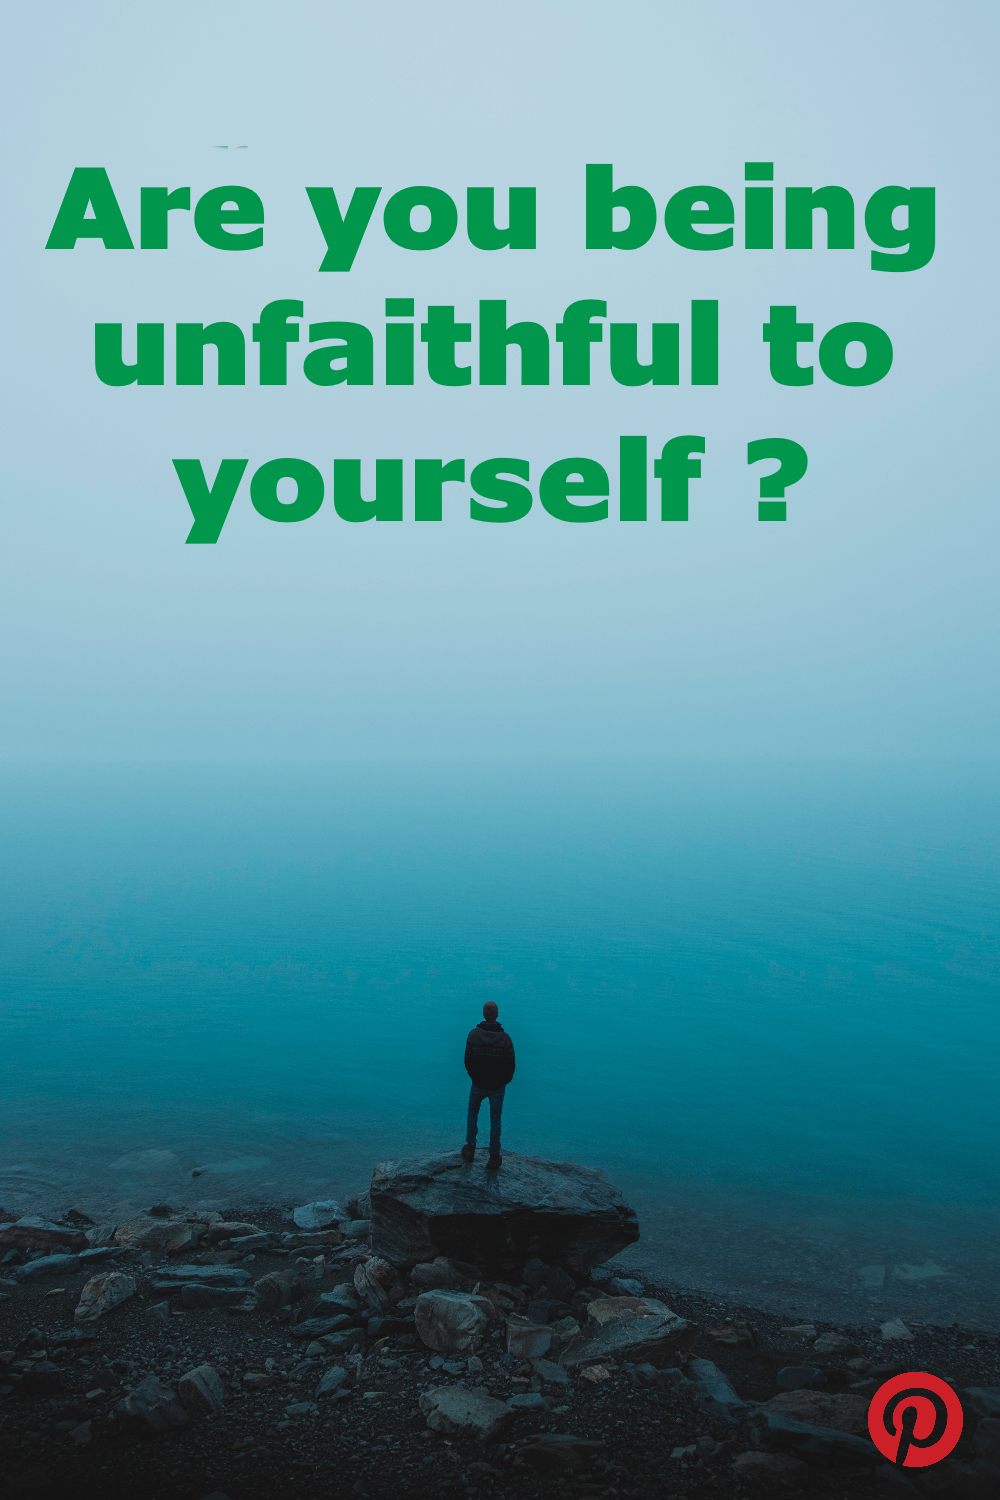 Are you being unfaithful to yourself?